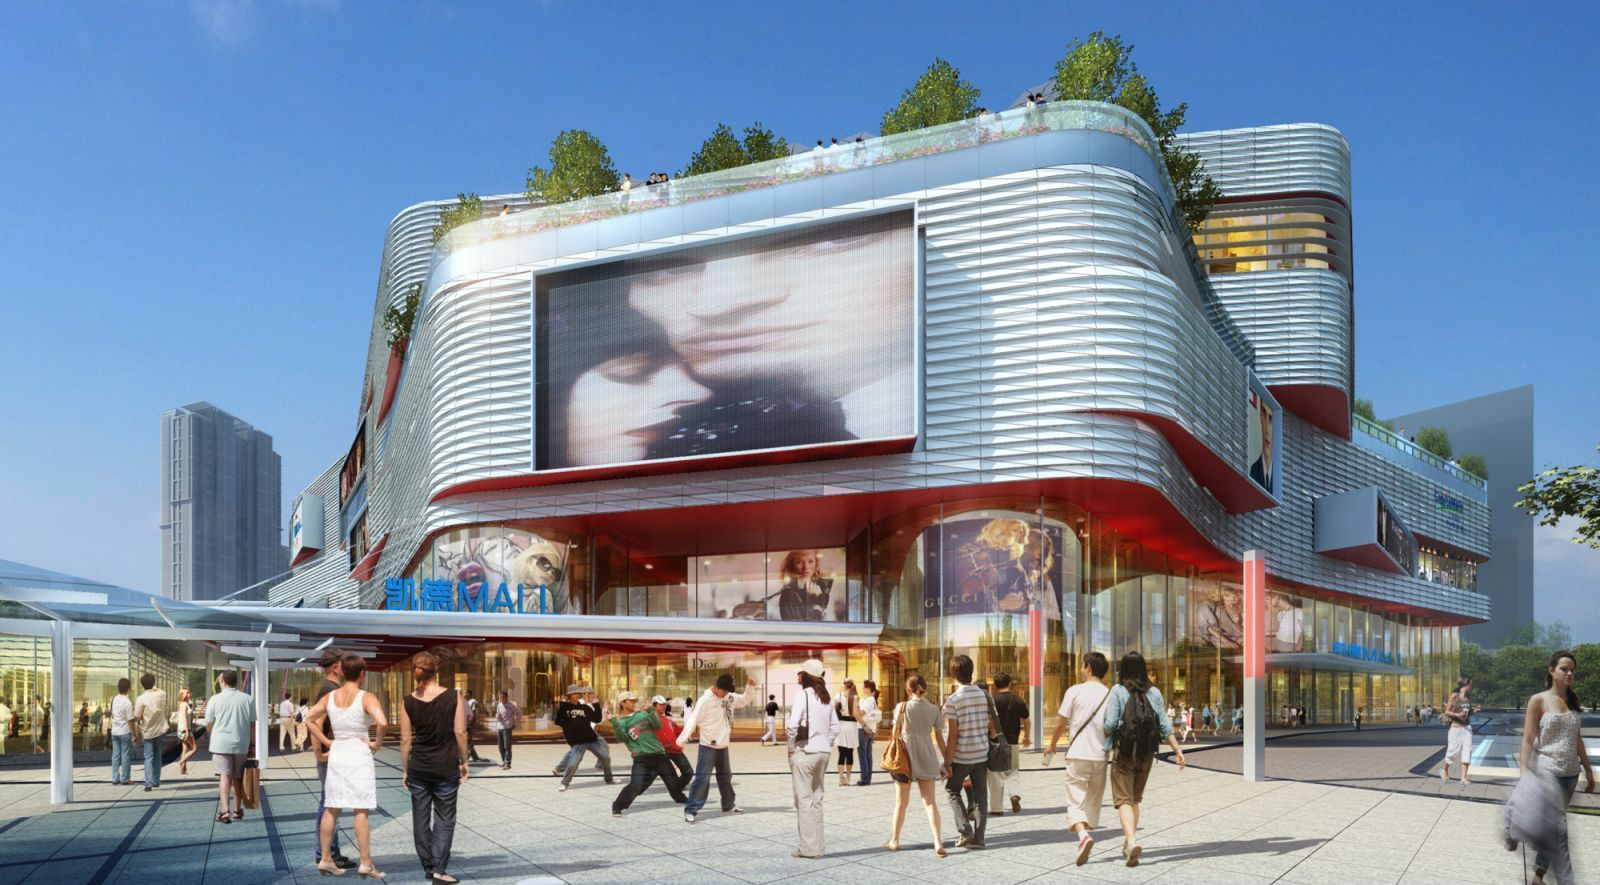 Capitamall Xinduxin By Laguarda Low Architects Facade Architecture Shopping Center Architecture Retail Architecture